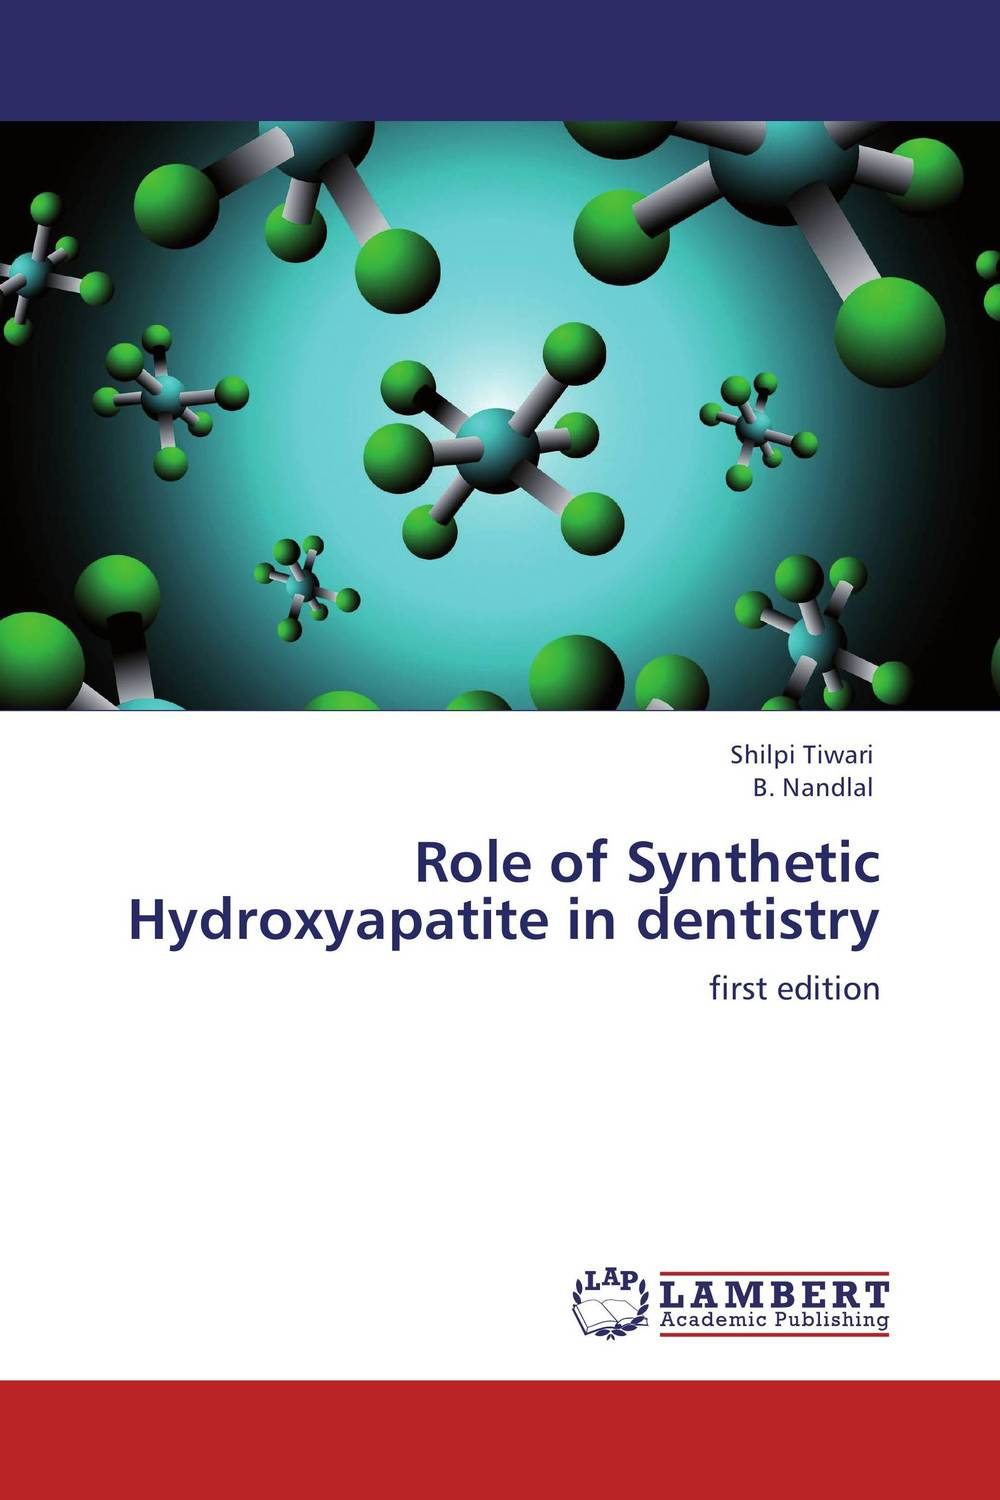 Role of Synthetic Hydroxyapatite in dentistry esthetics in implant dentistry